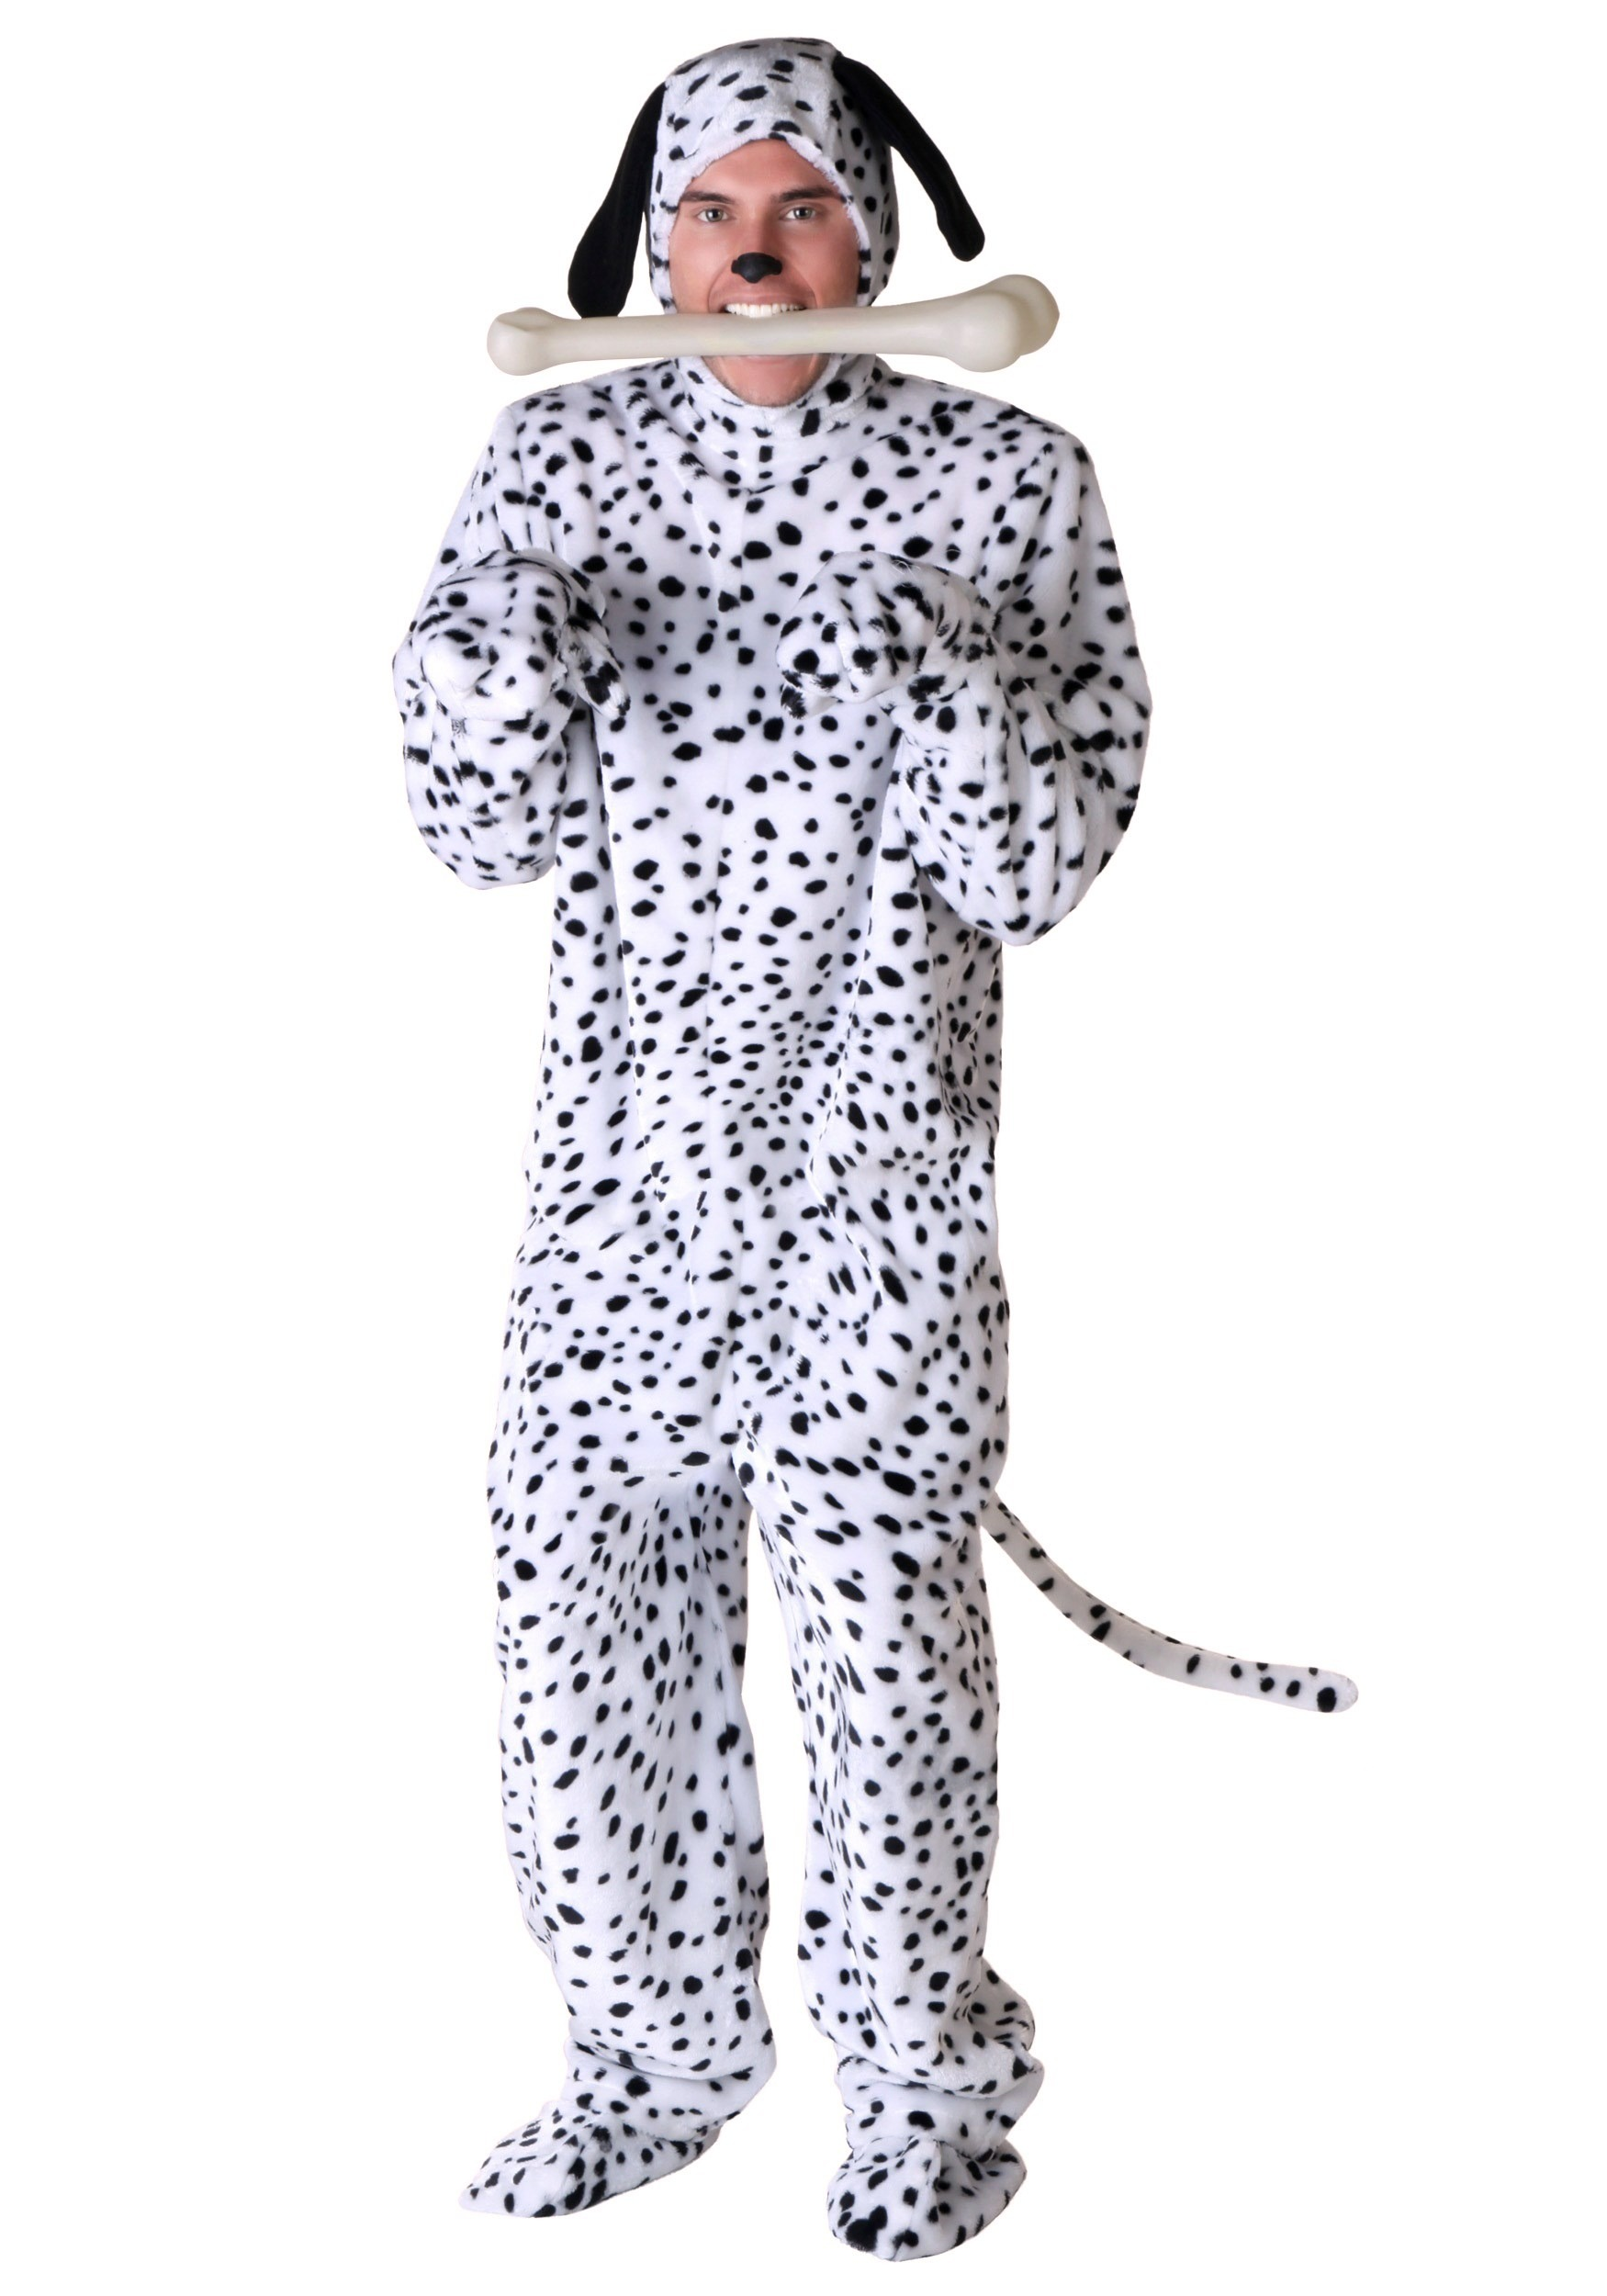 Adult Dalmatian Costume  sc 1 st  Halloween Costumes & Dog Costumes For Kids u0026 Adults - HalloweenCostumes.com